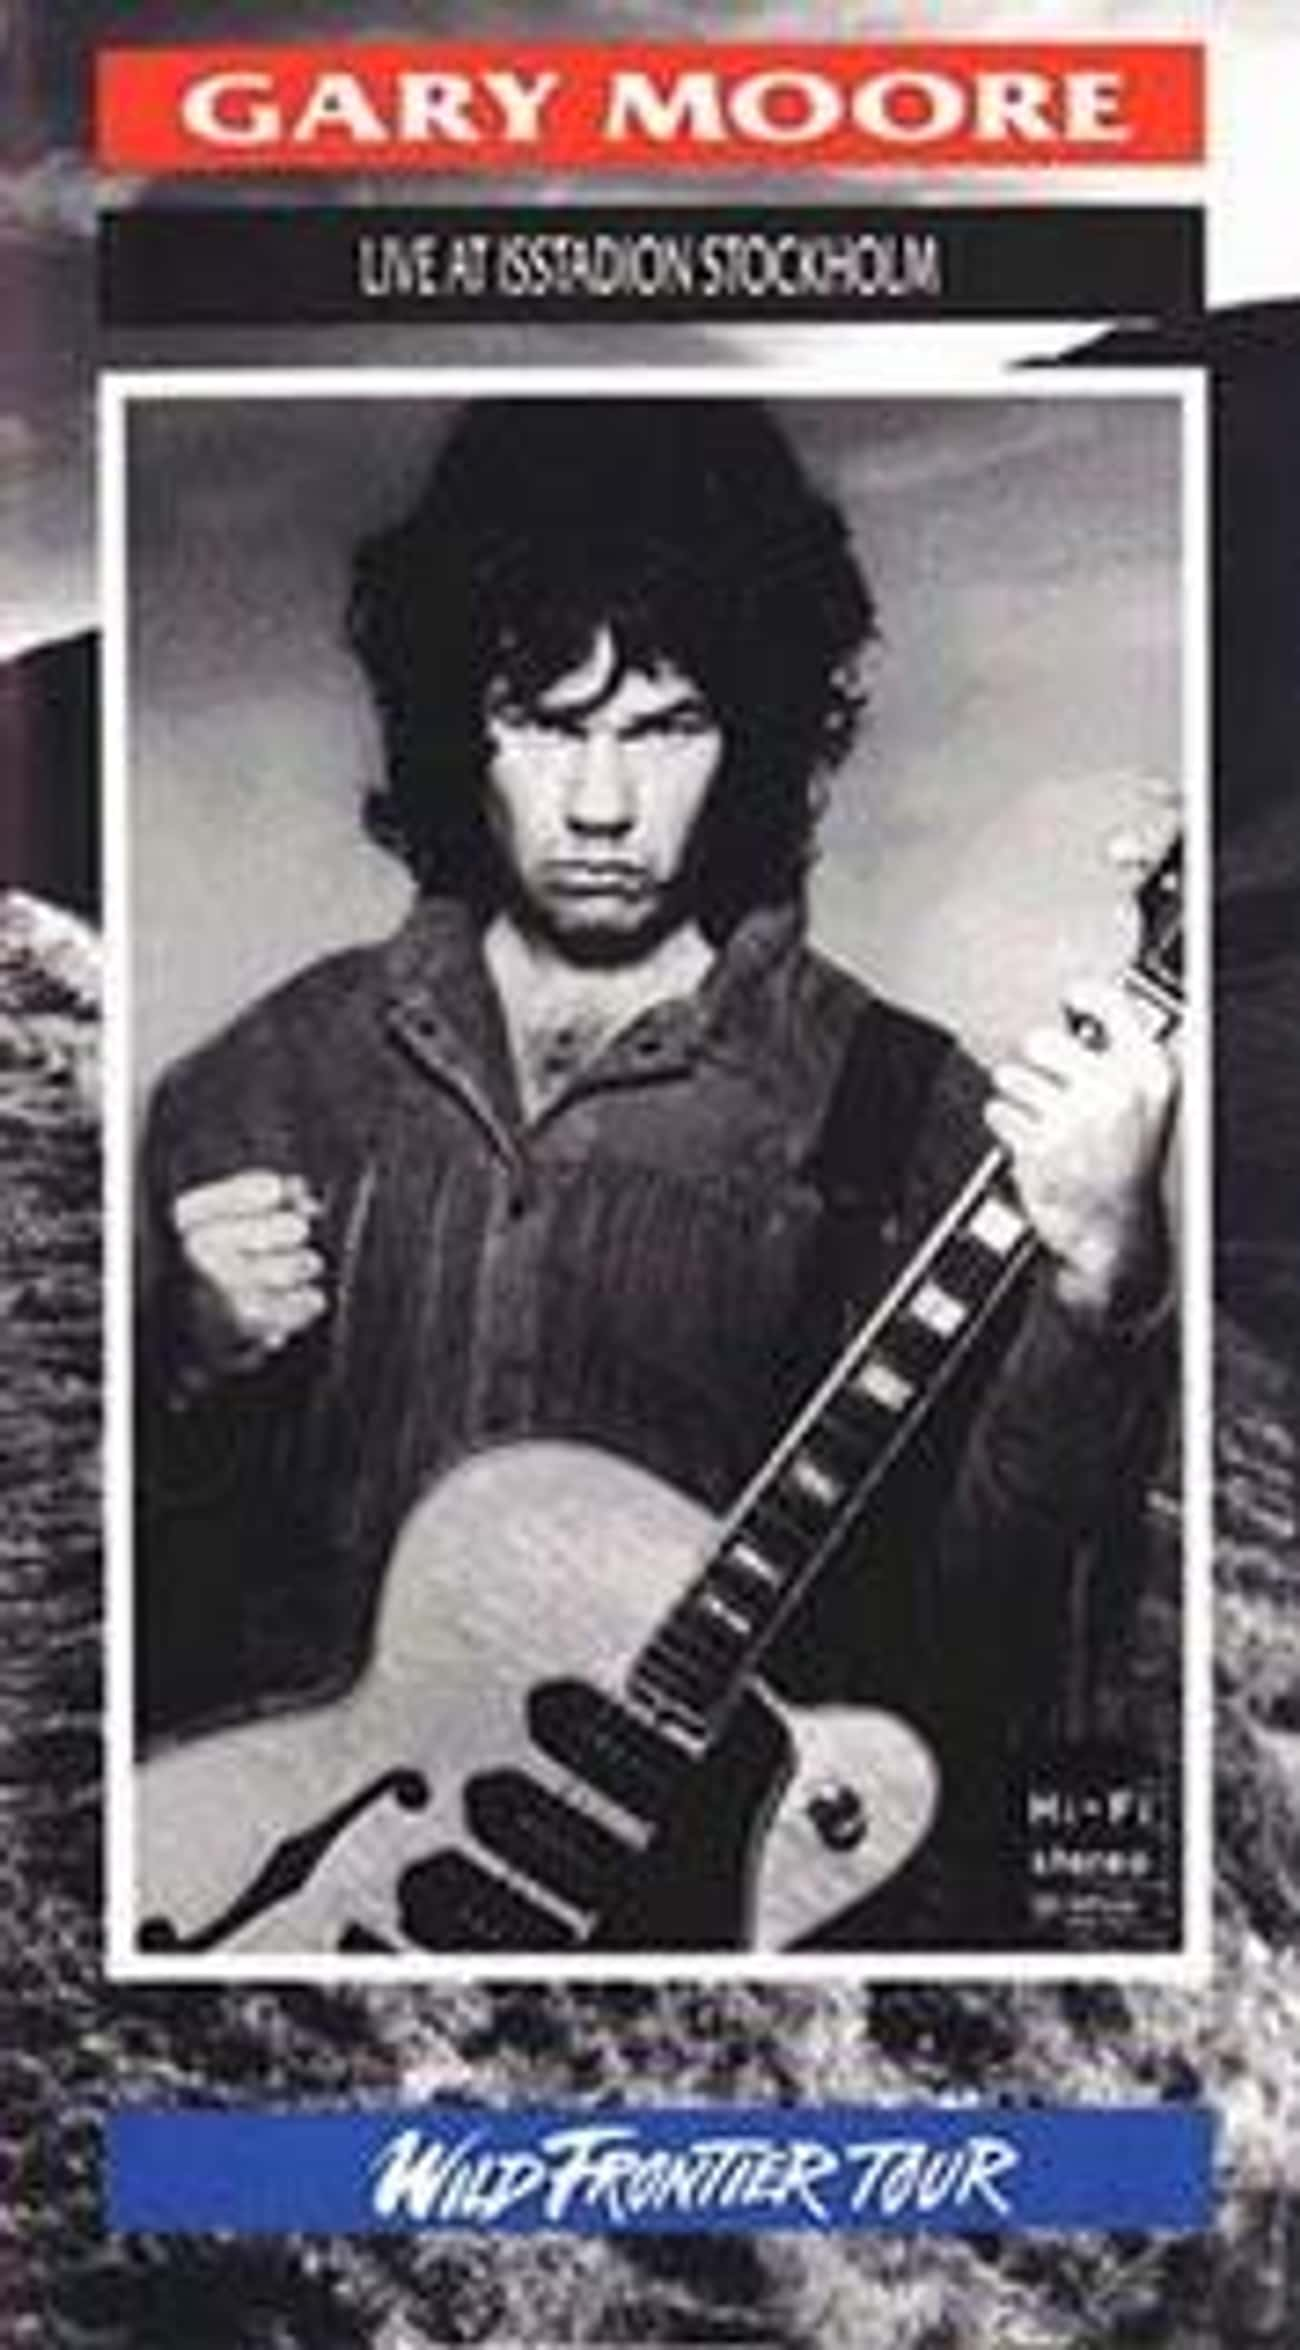 Wild Frontier is listed (or ranked) 3 on the list The Best Gary Moore Albums of All Time